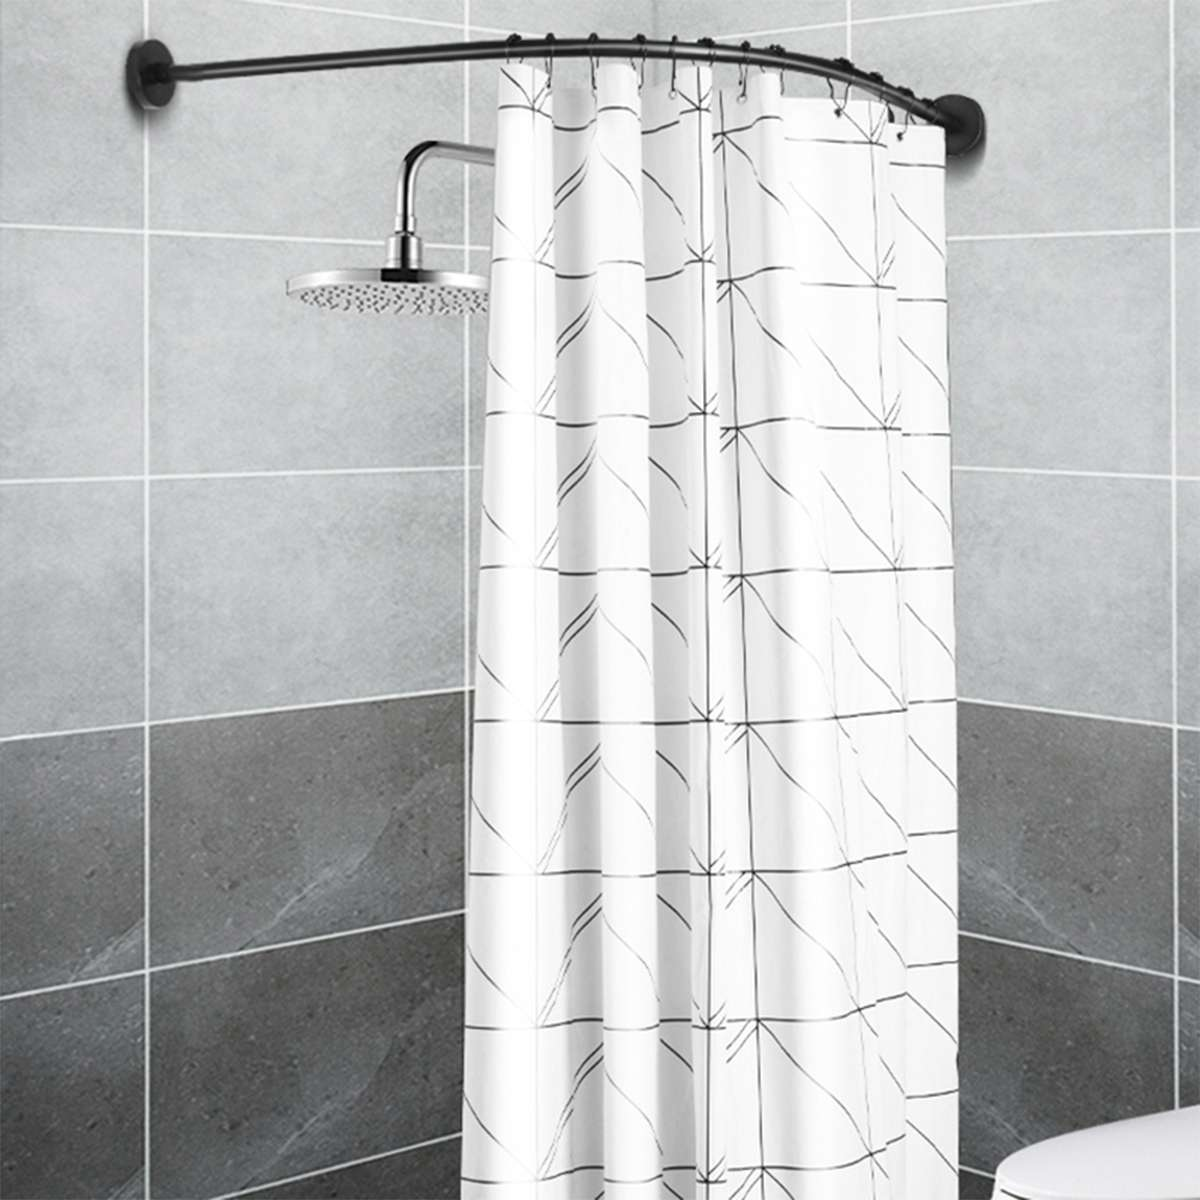 Extendable Corner Shower Curtain Rod Pole Black Stainless Steel Rail Rod Bar Bath Door Hardware Heavy Loaded With 12 Metal Hooks